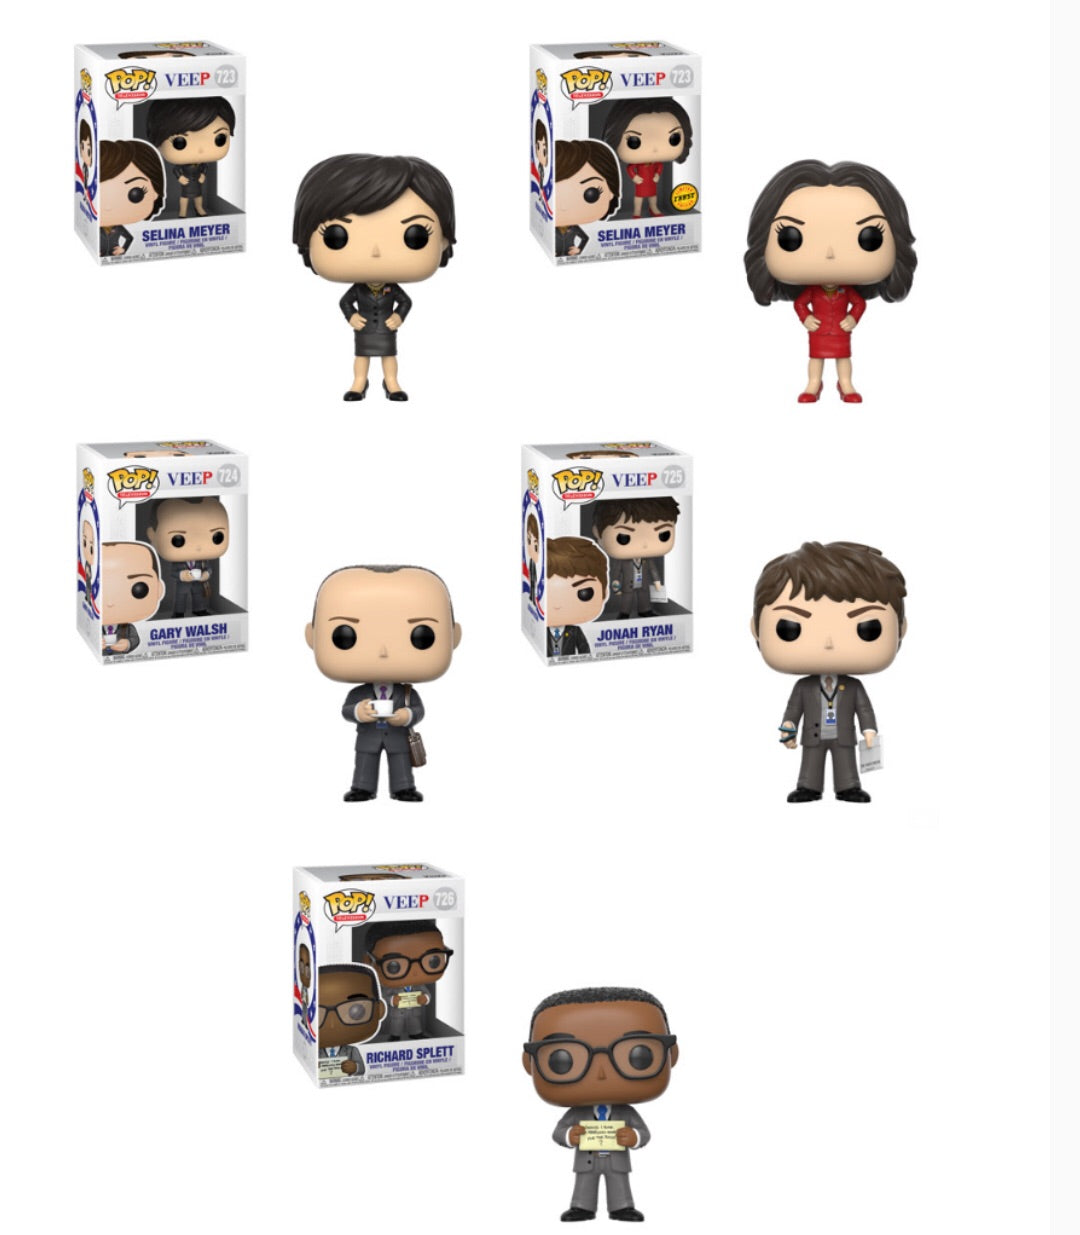 Veep Funko Pop! Complete Set of 5 CHASE Included (Pre-Order)